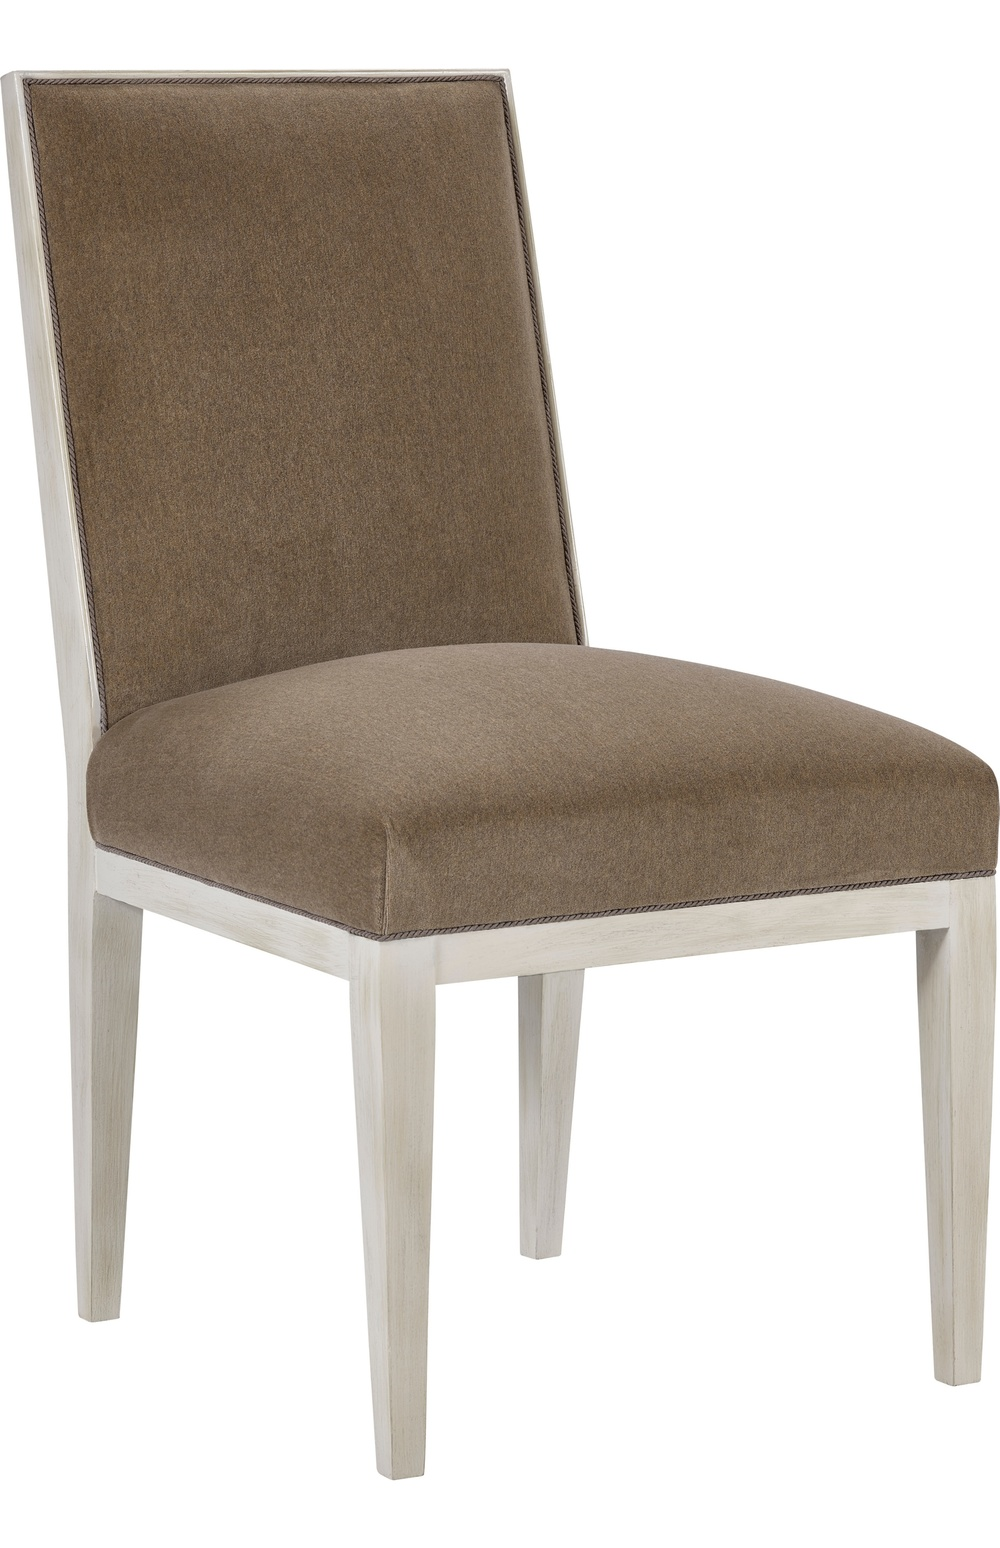 Hickory Chair - Closion Dining Chair